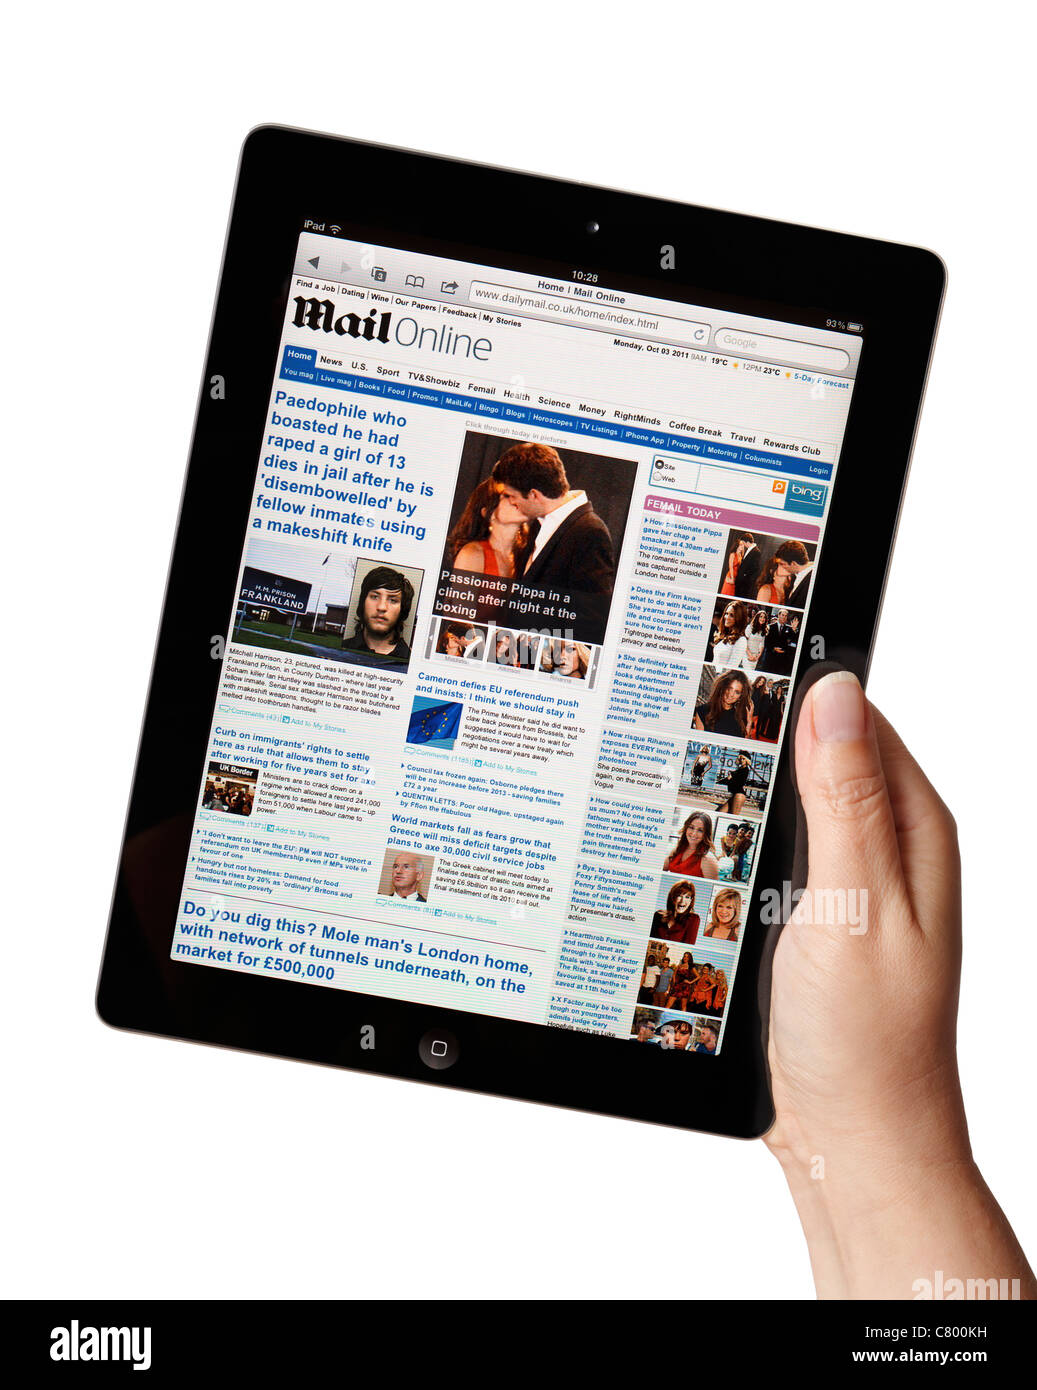 Hand holding iPad showing the Daily Mail newspaper online website - Stock Image